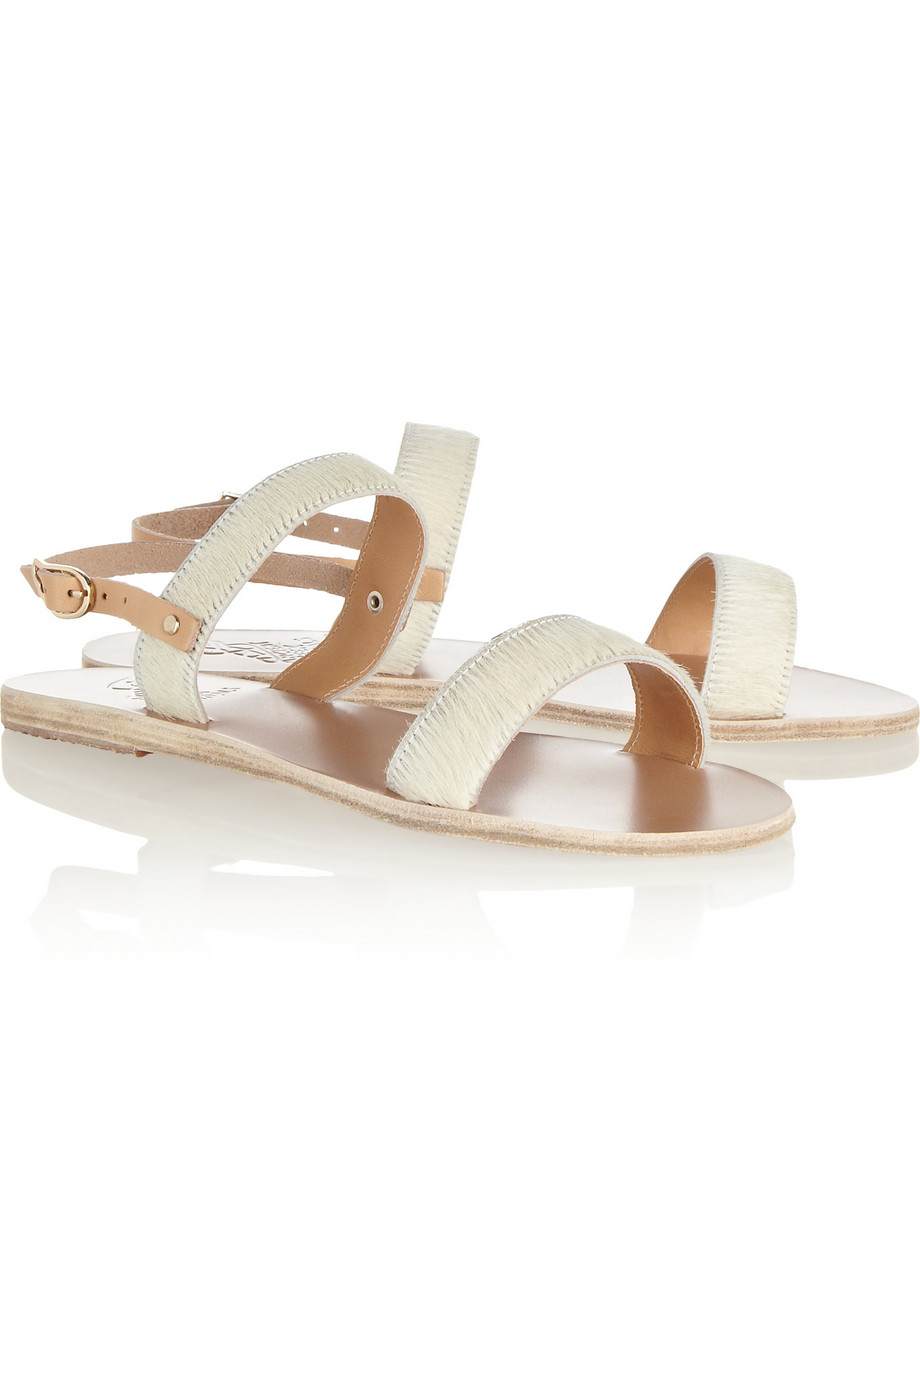 d6c3b0206f0f8 Lyst - Ancient Greek Sandals Clio Calf Hair And Leather Sandals in White